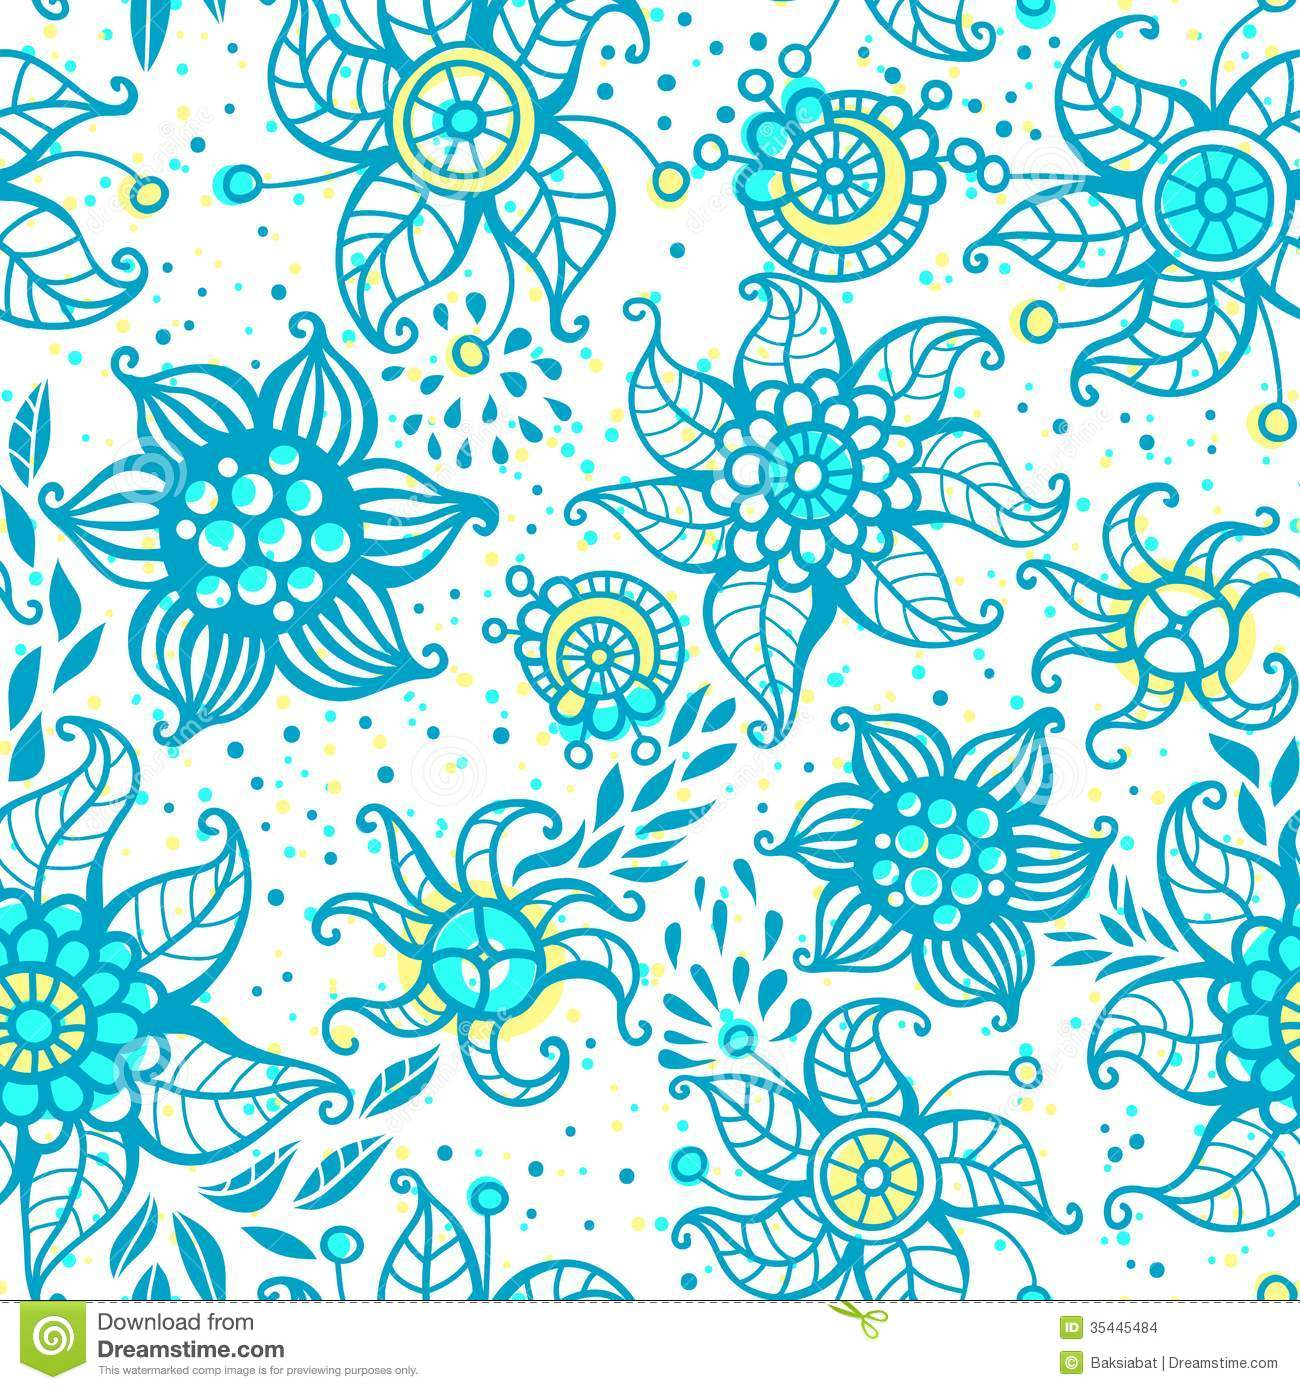 Cute wallpapers patterns impremedia cute simple pattern wallpaper cute floral seamless pattern voltagebd Image collections